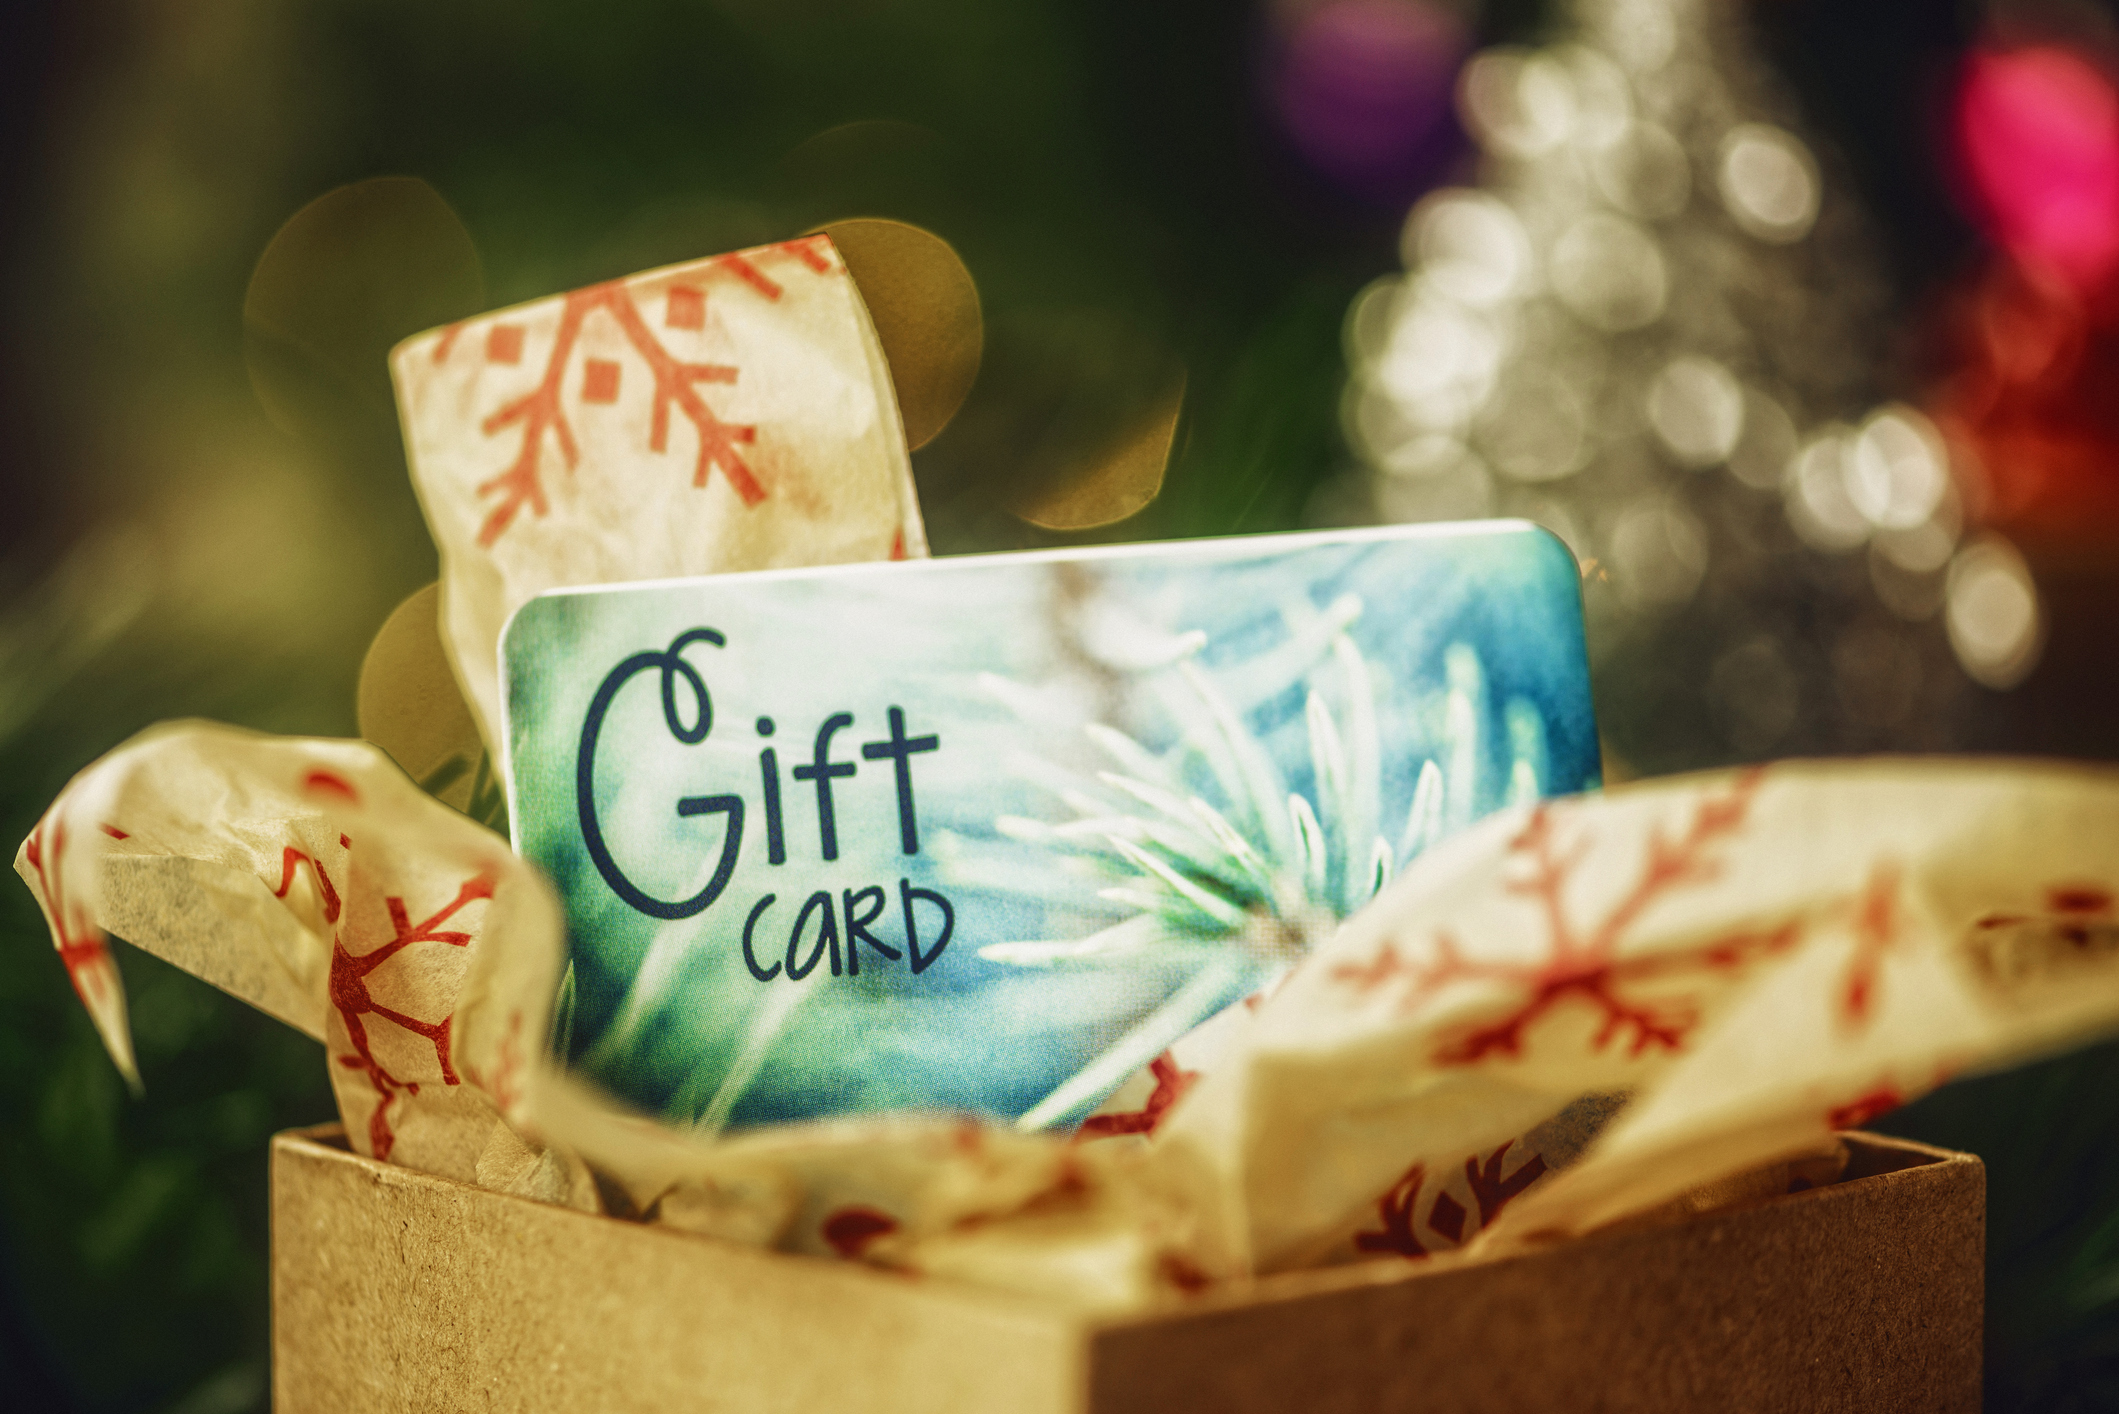 Maximize gift cards - Offer digital and traditional cardsAdd incentives if redeemed during lower volume time-frames